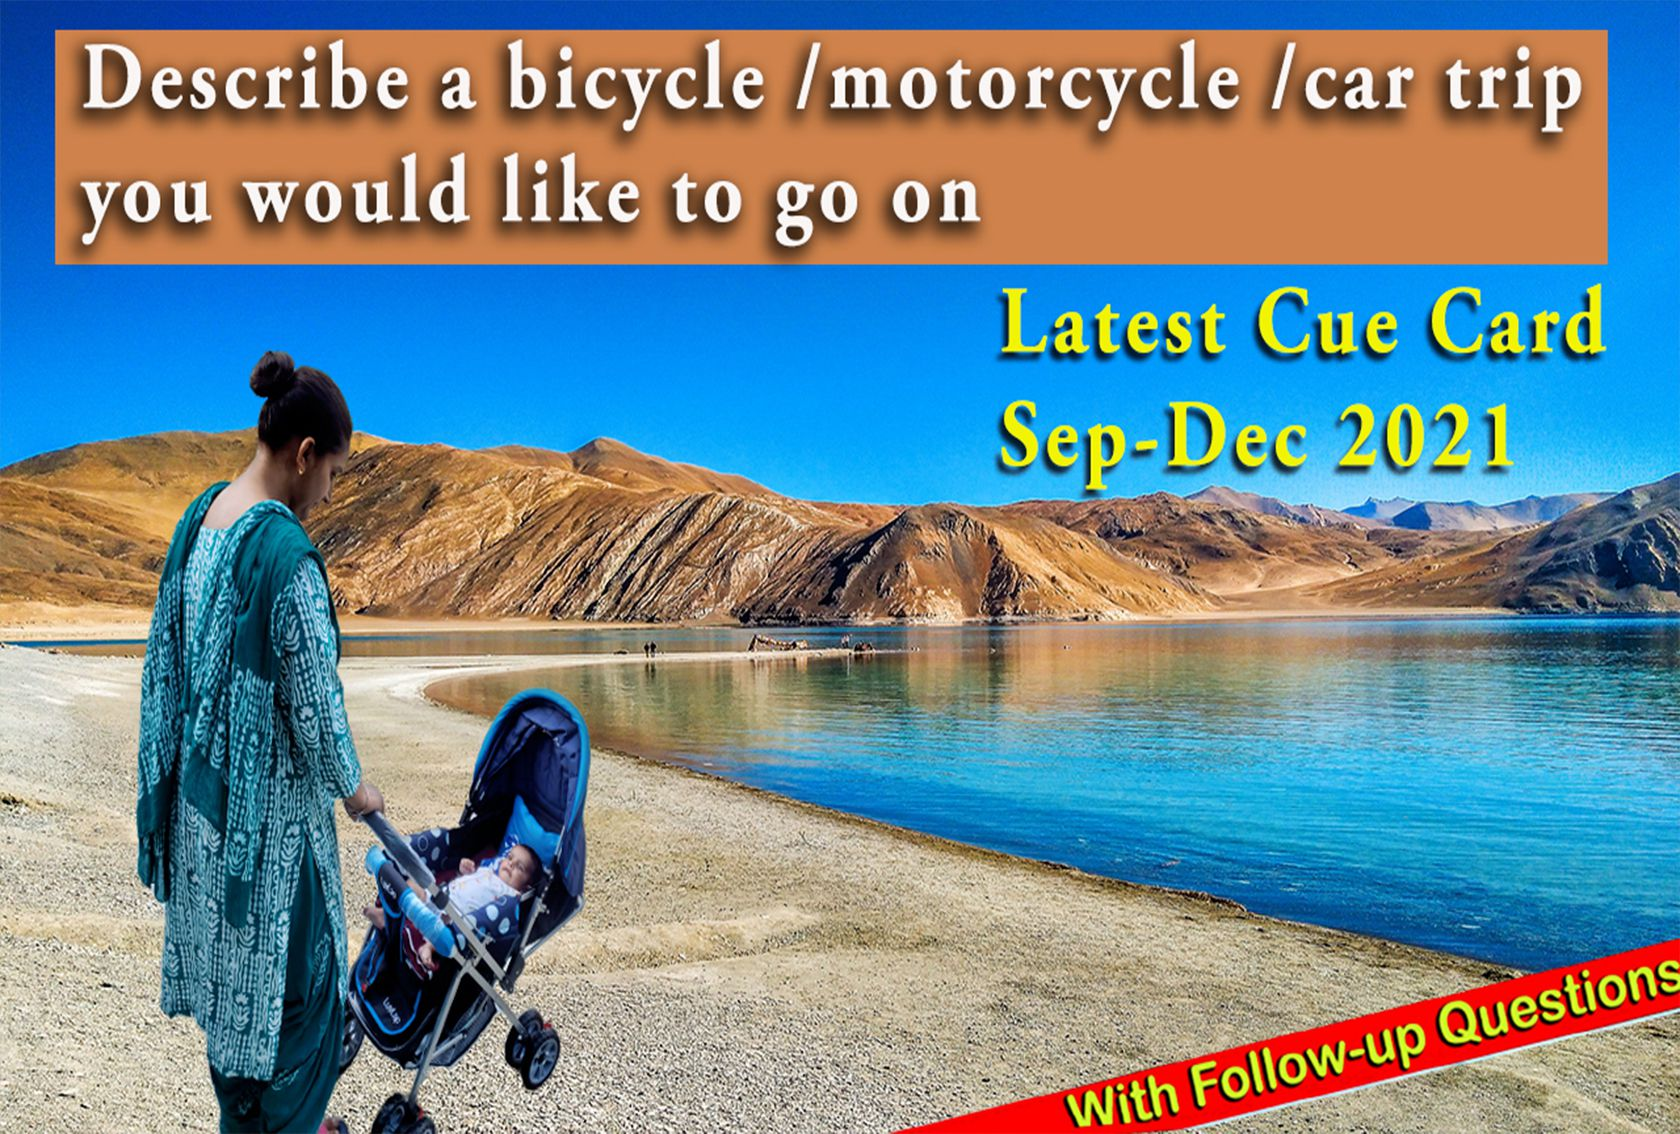 Describe a bicycle /motorcycle /car trip you would like to go on Cue card